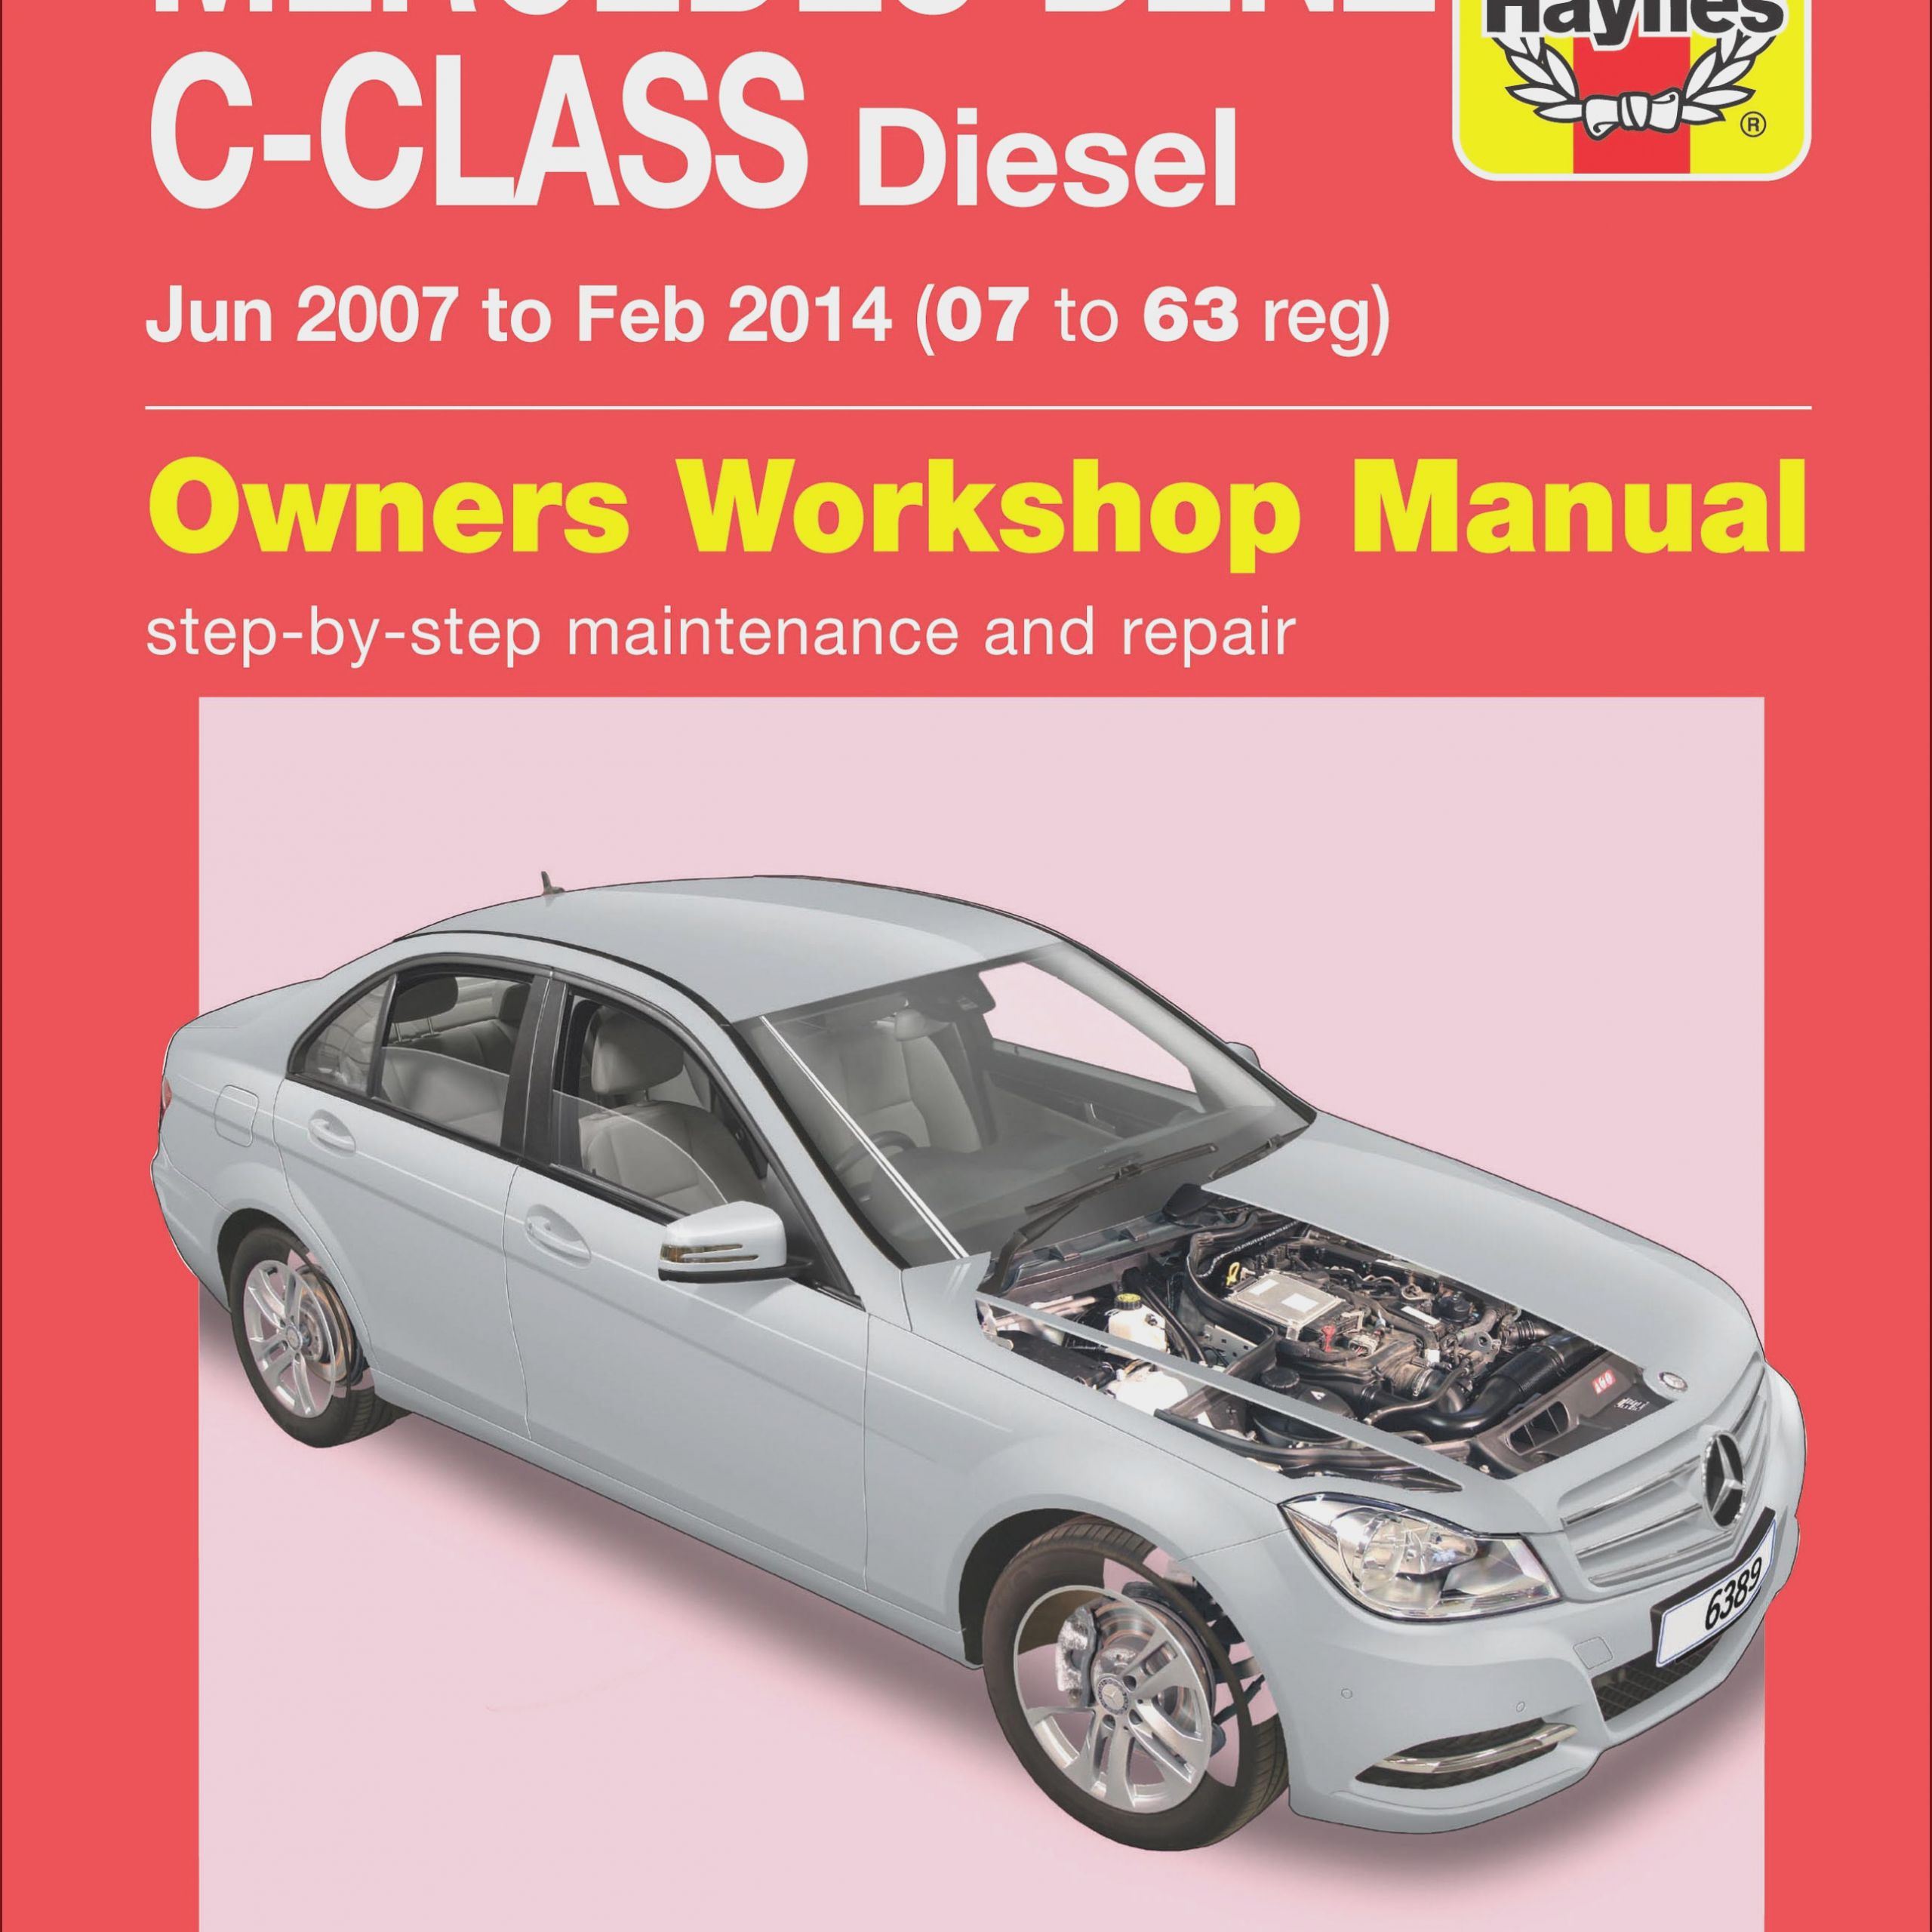 2010 Mercedes C300 Fresh Mercedes C Class Owners Manual Pdf Uk at Manuals Library